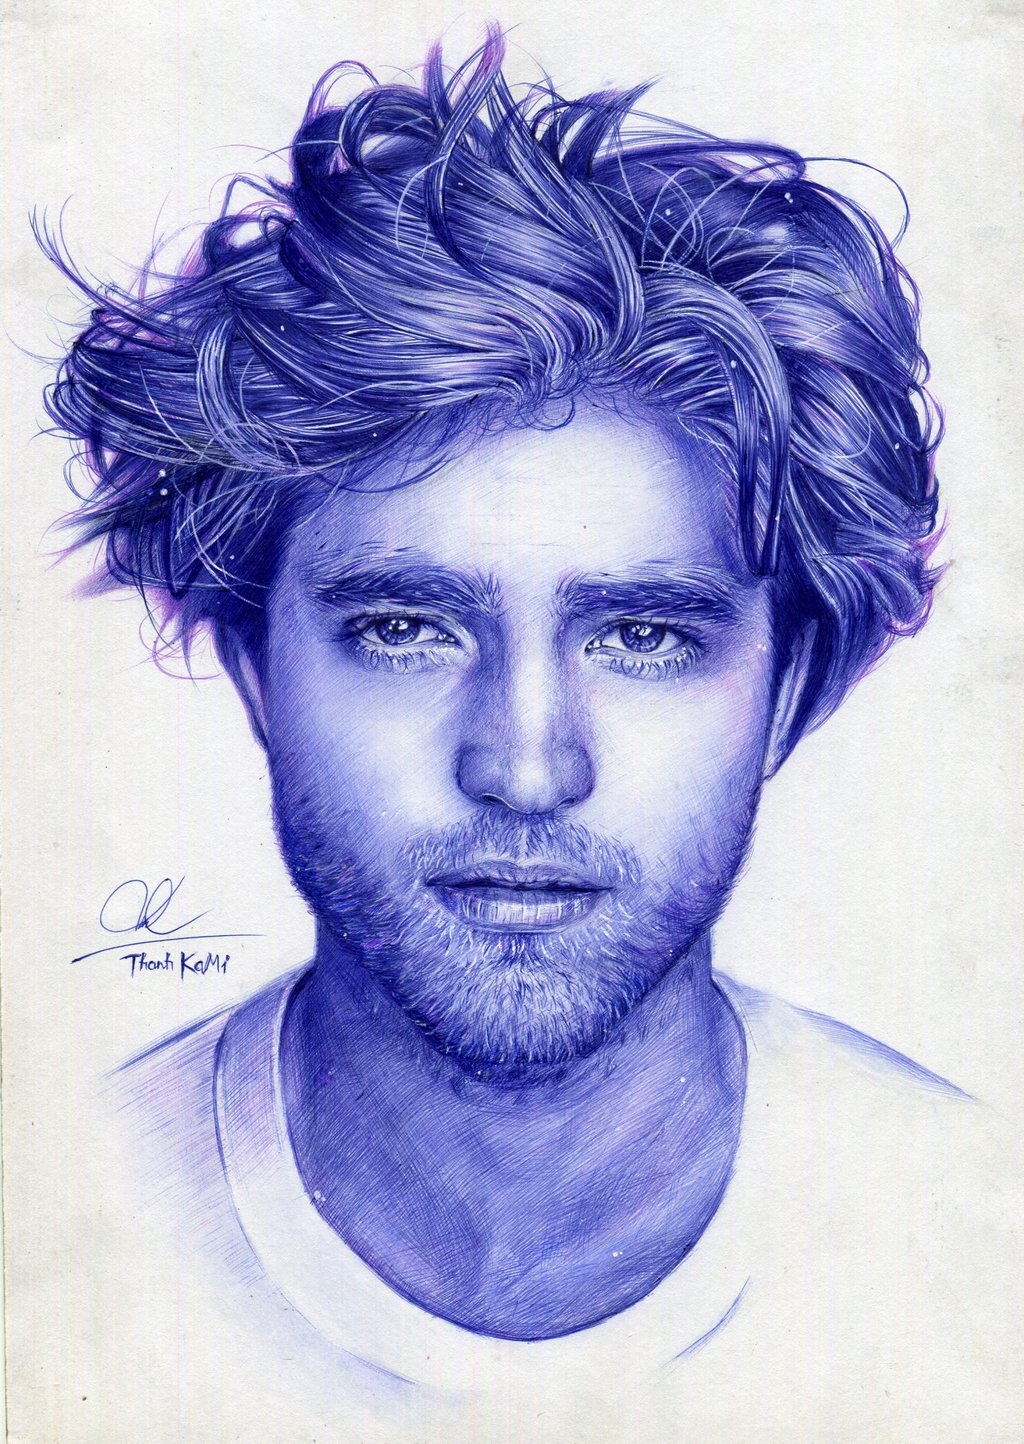 Drawn portrait ballpoint pen Pen Thanh girlfriend Robert on